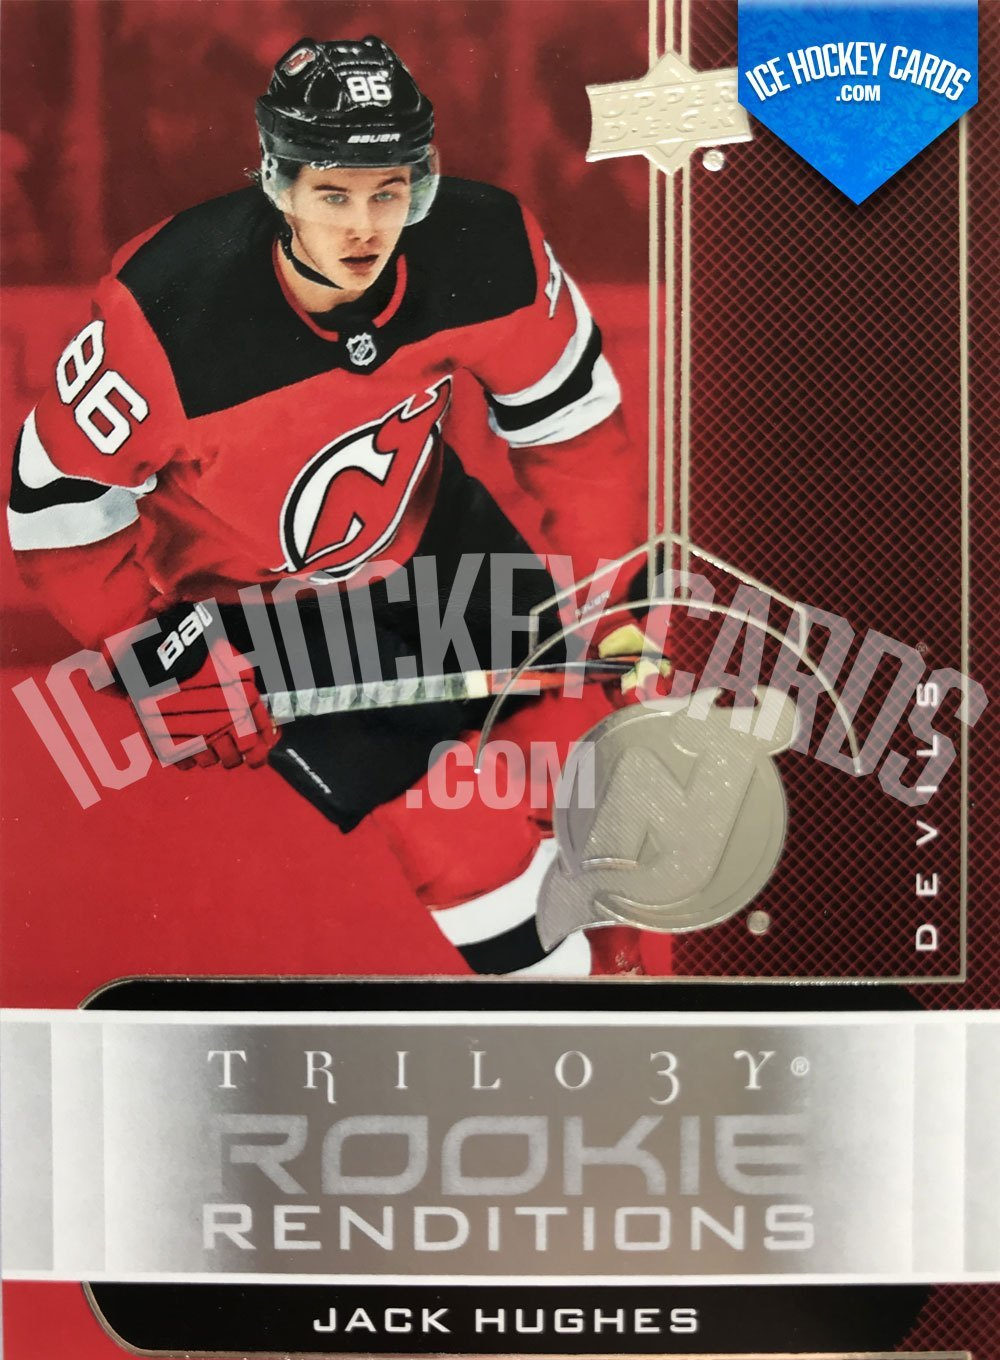 Upper Deck - Trilogy 19-20 - Jack Hughes Rookie Renditions